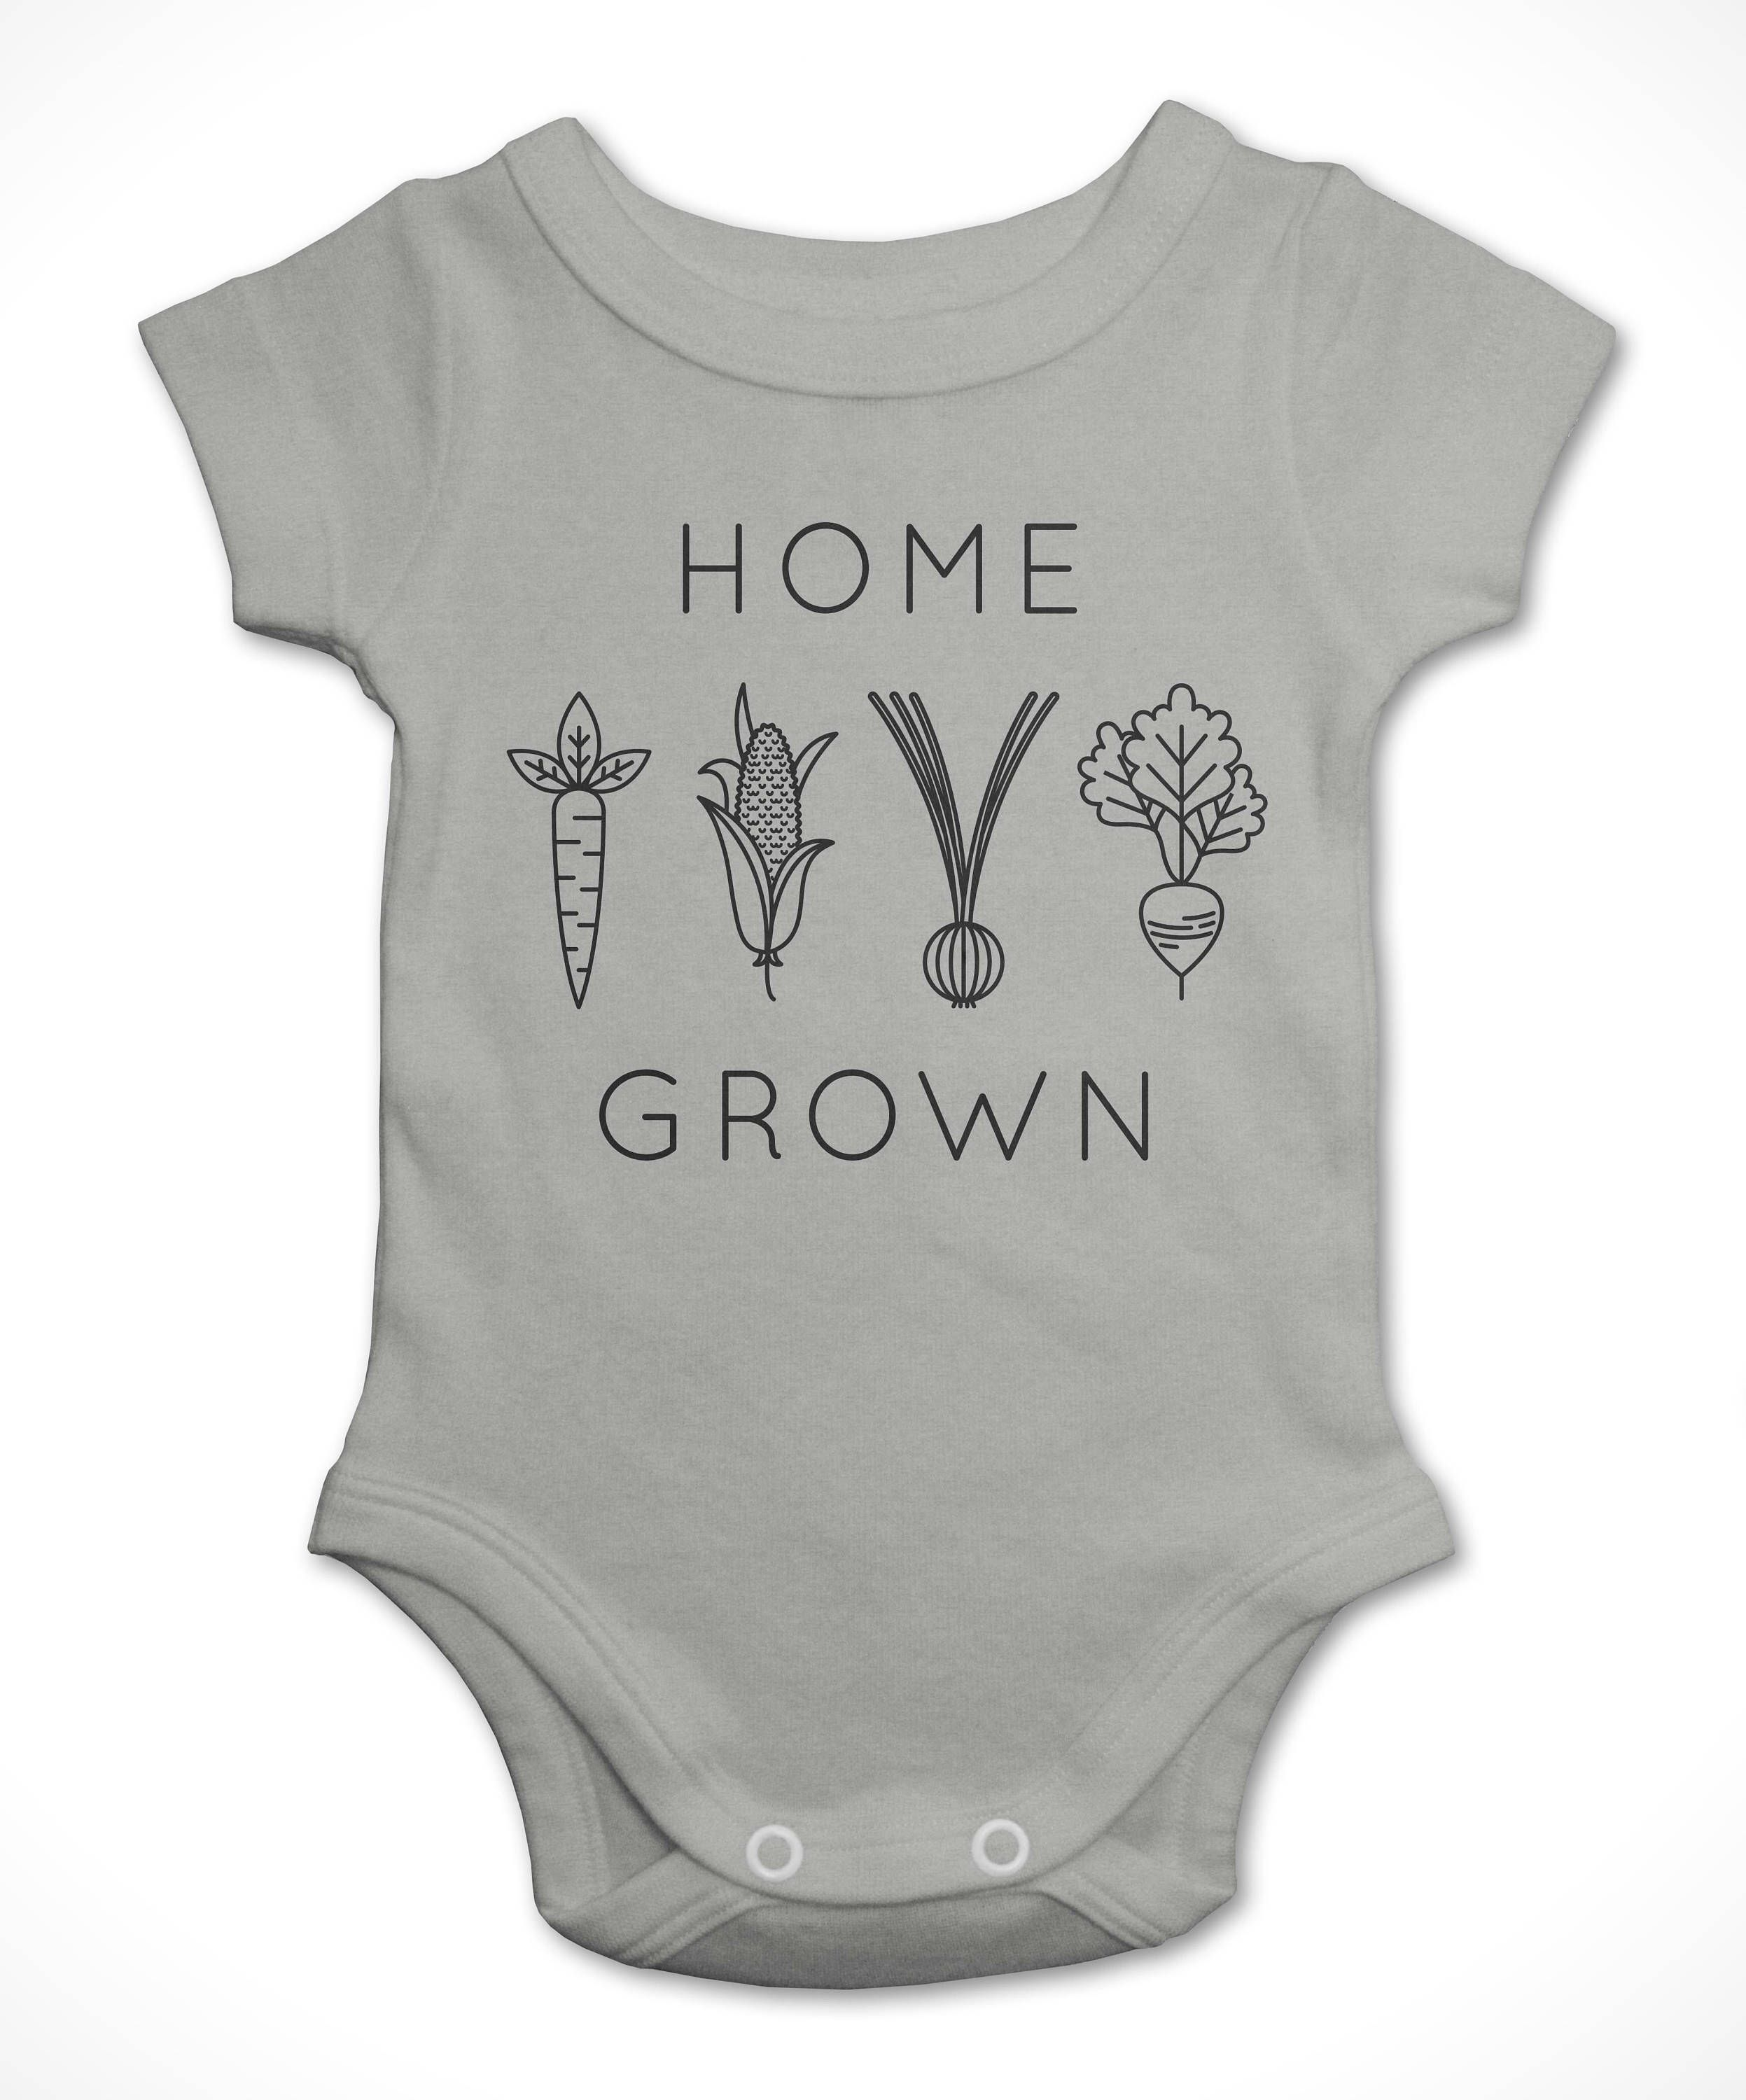 1dc9cab5ffe19 Home Grown Onesie, Hipster Baby Clothes, Wild Baby Clothes, Bohemian Baby,  Trendy